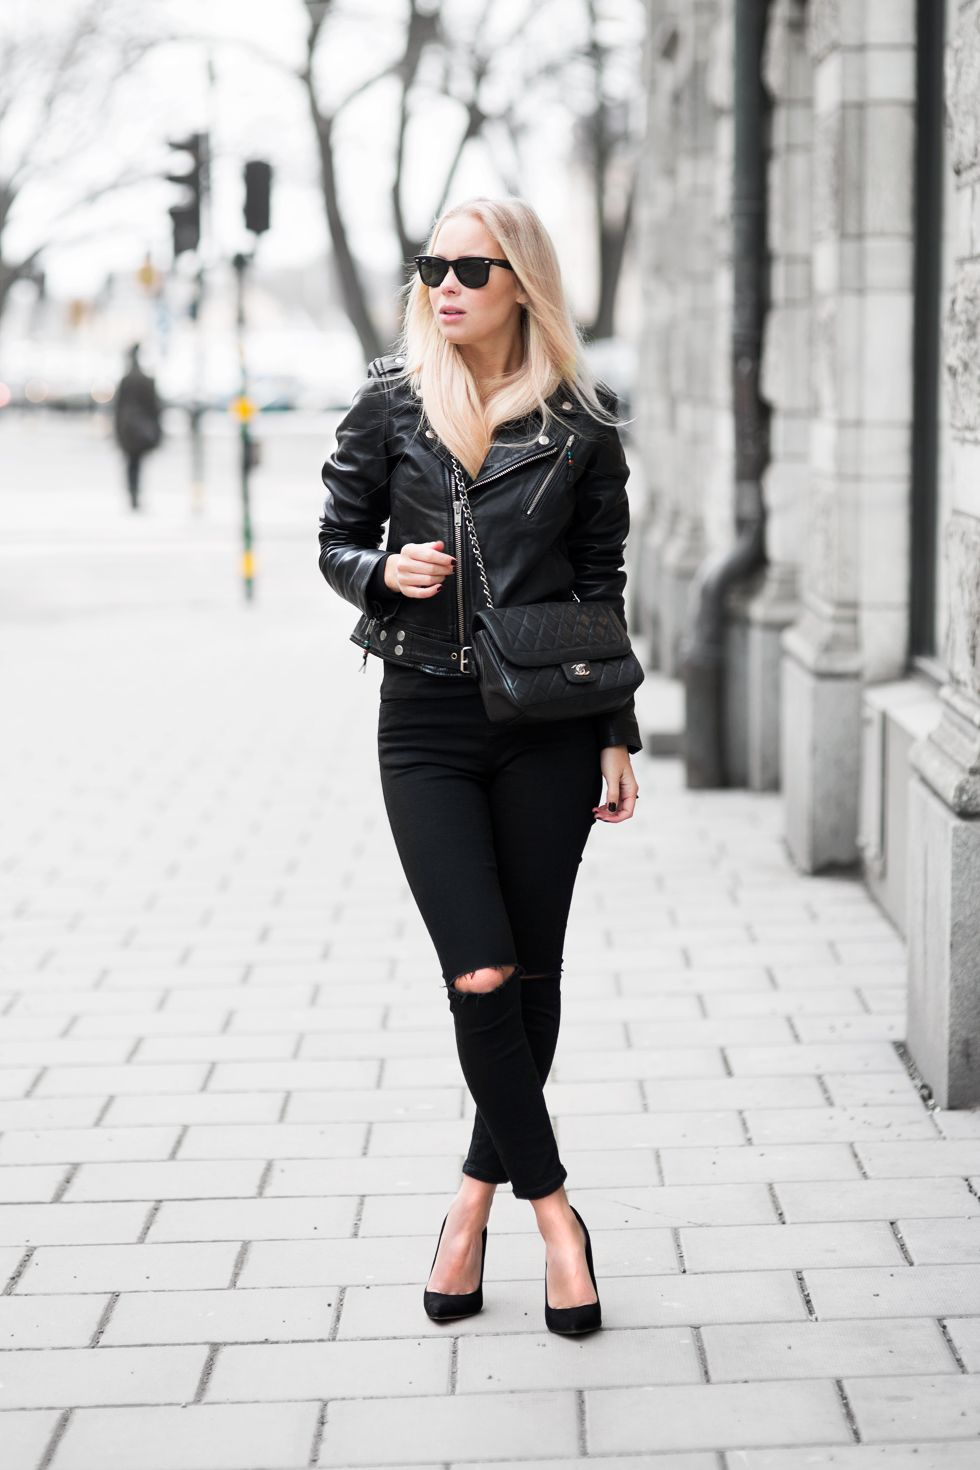 Fashion Bloggers Leather Jacket Style All Black Outfit Leather Jackets Women [ 1470 x 980 Pixel ]